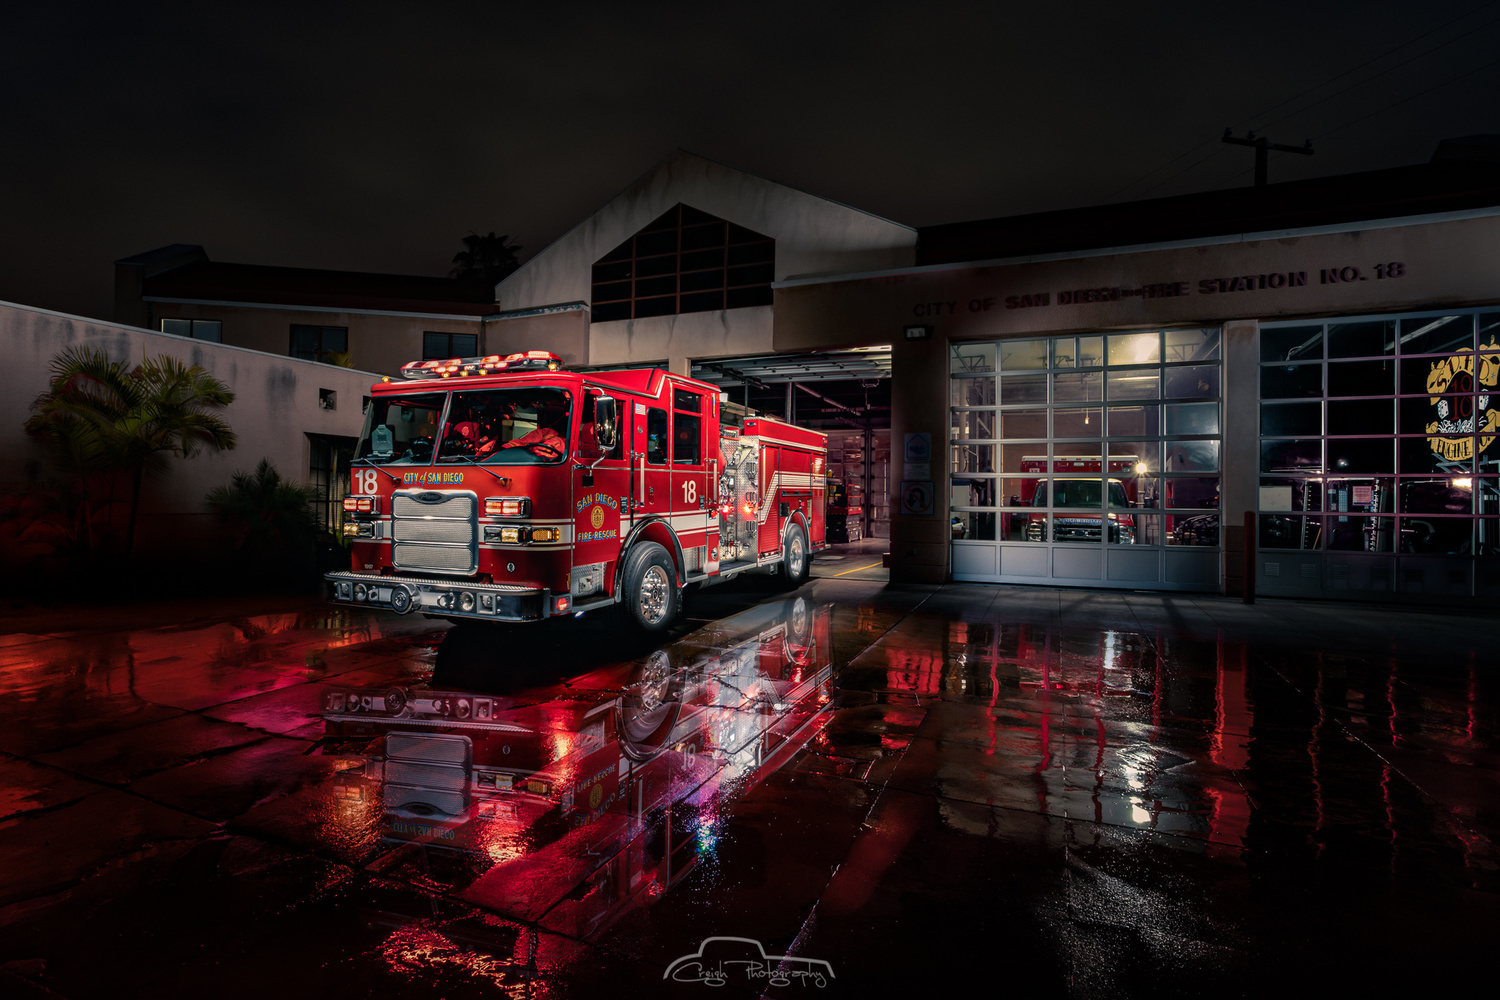 SDFD Station 18 by Creigh McIntyre